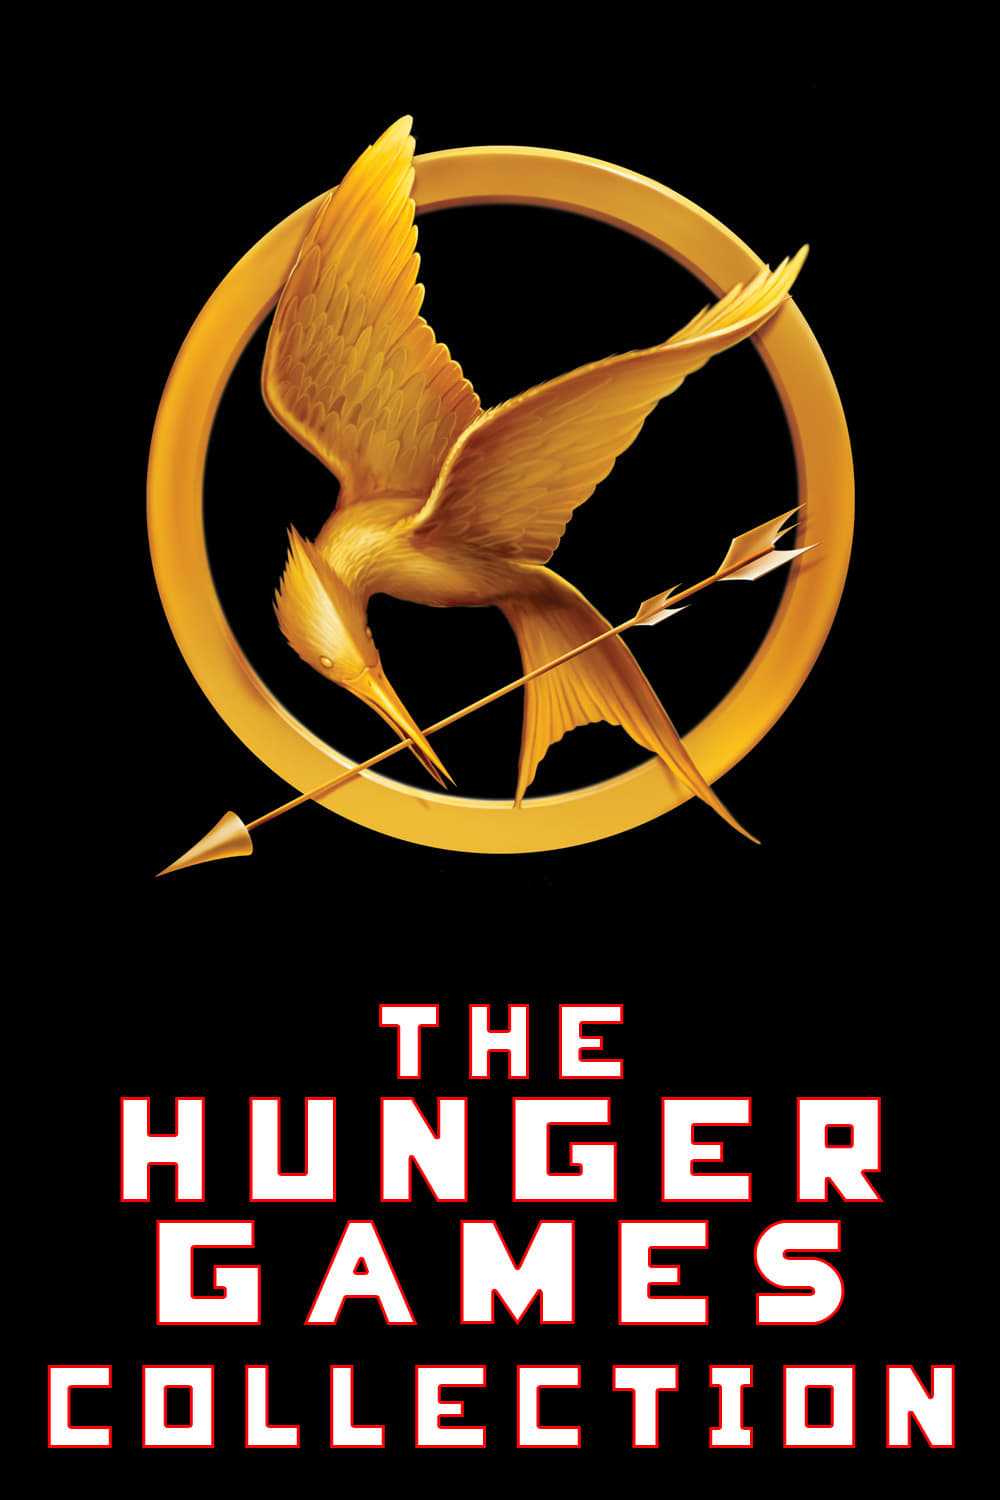 the dystopian properties of panem in the hunger games a novel series by suzanne collins The hunger games summary suzanne collins  suzanne collins's the hunger games is the first novel in a trilogy that explores a future dystopian society the story is set in a country that rose .